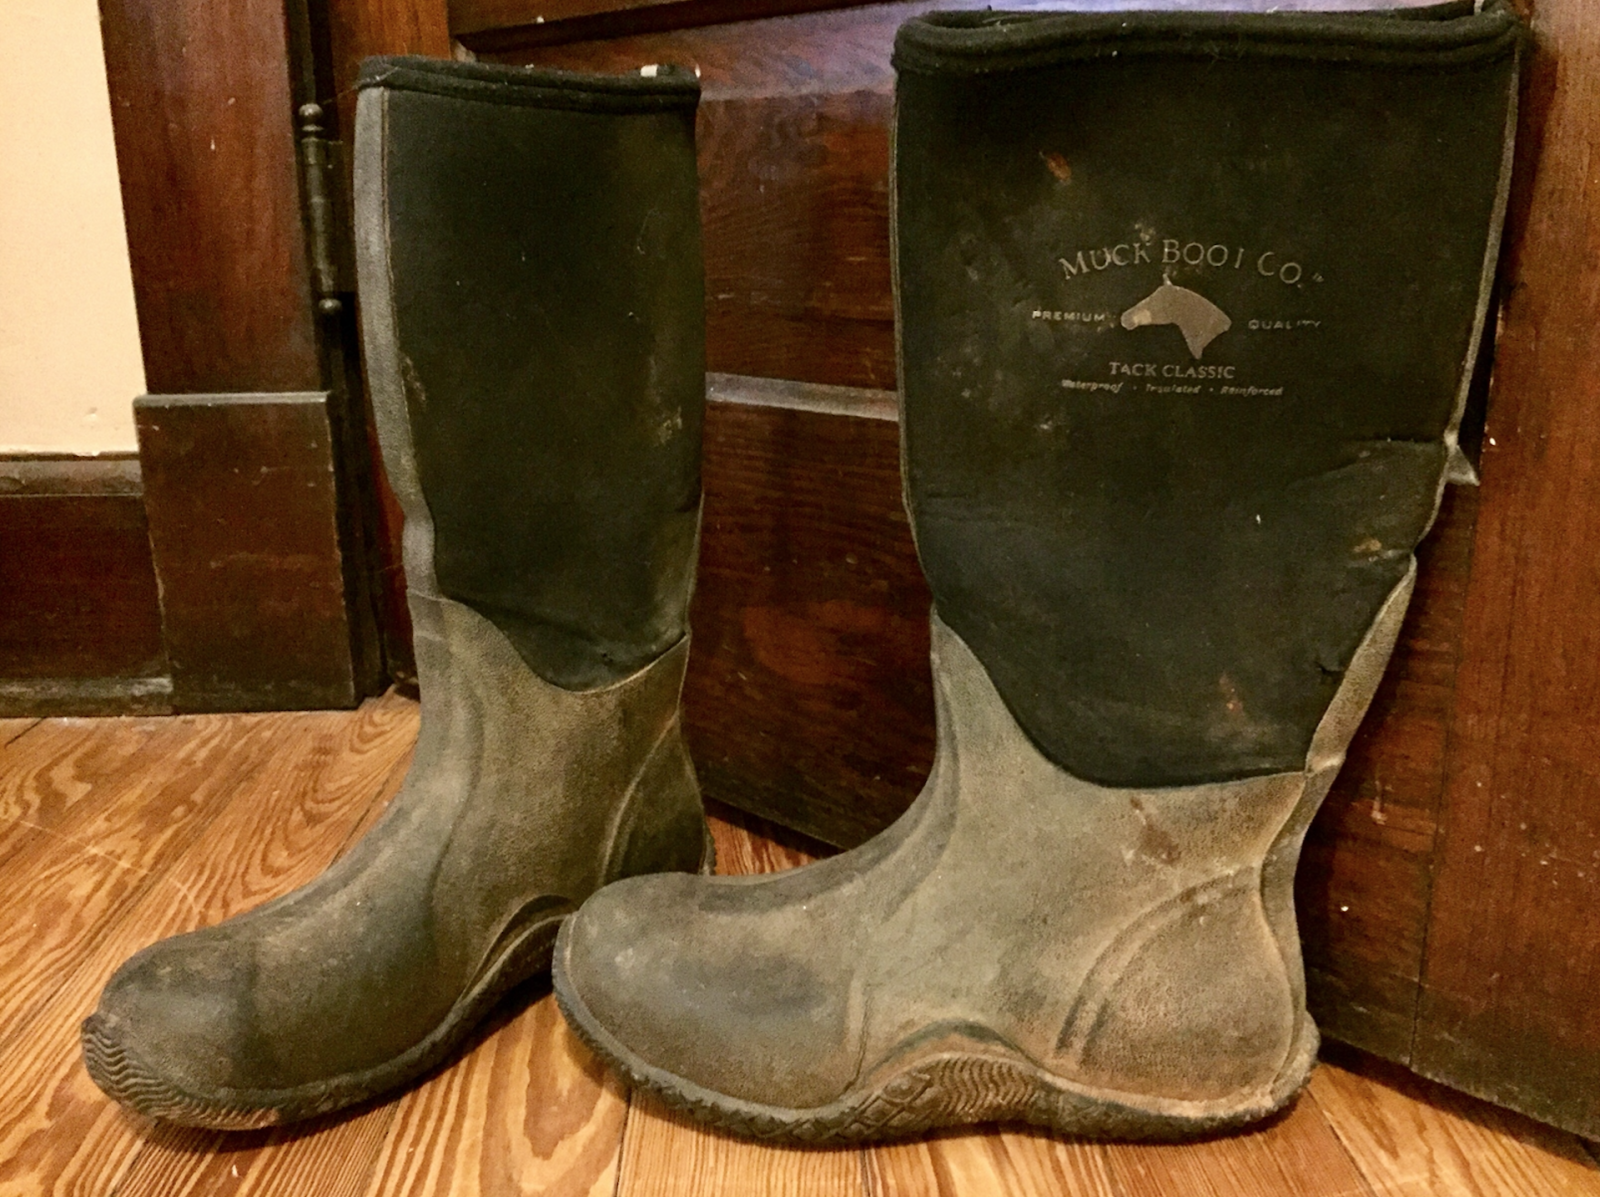 Product Review: Reign Supreme Winter Boot from The Original Muck ...